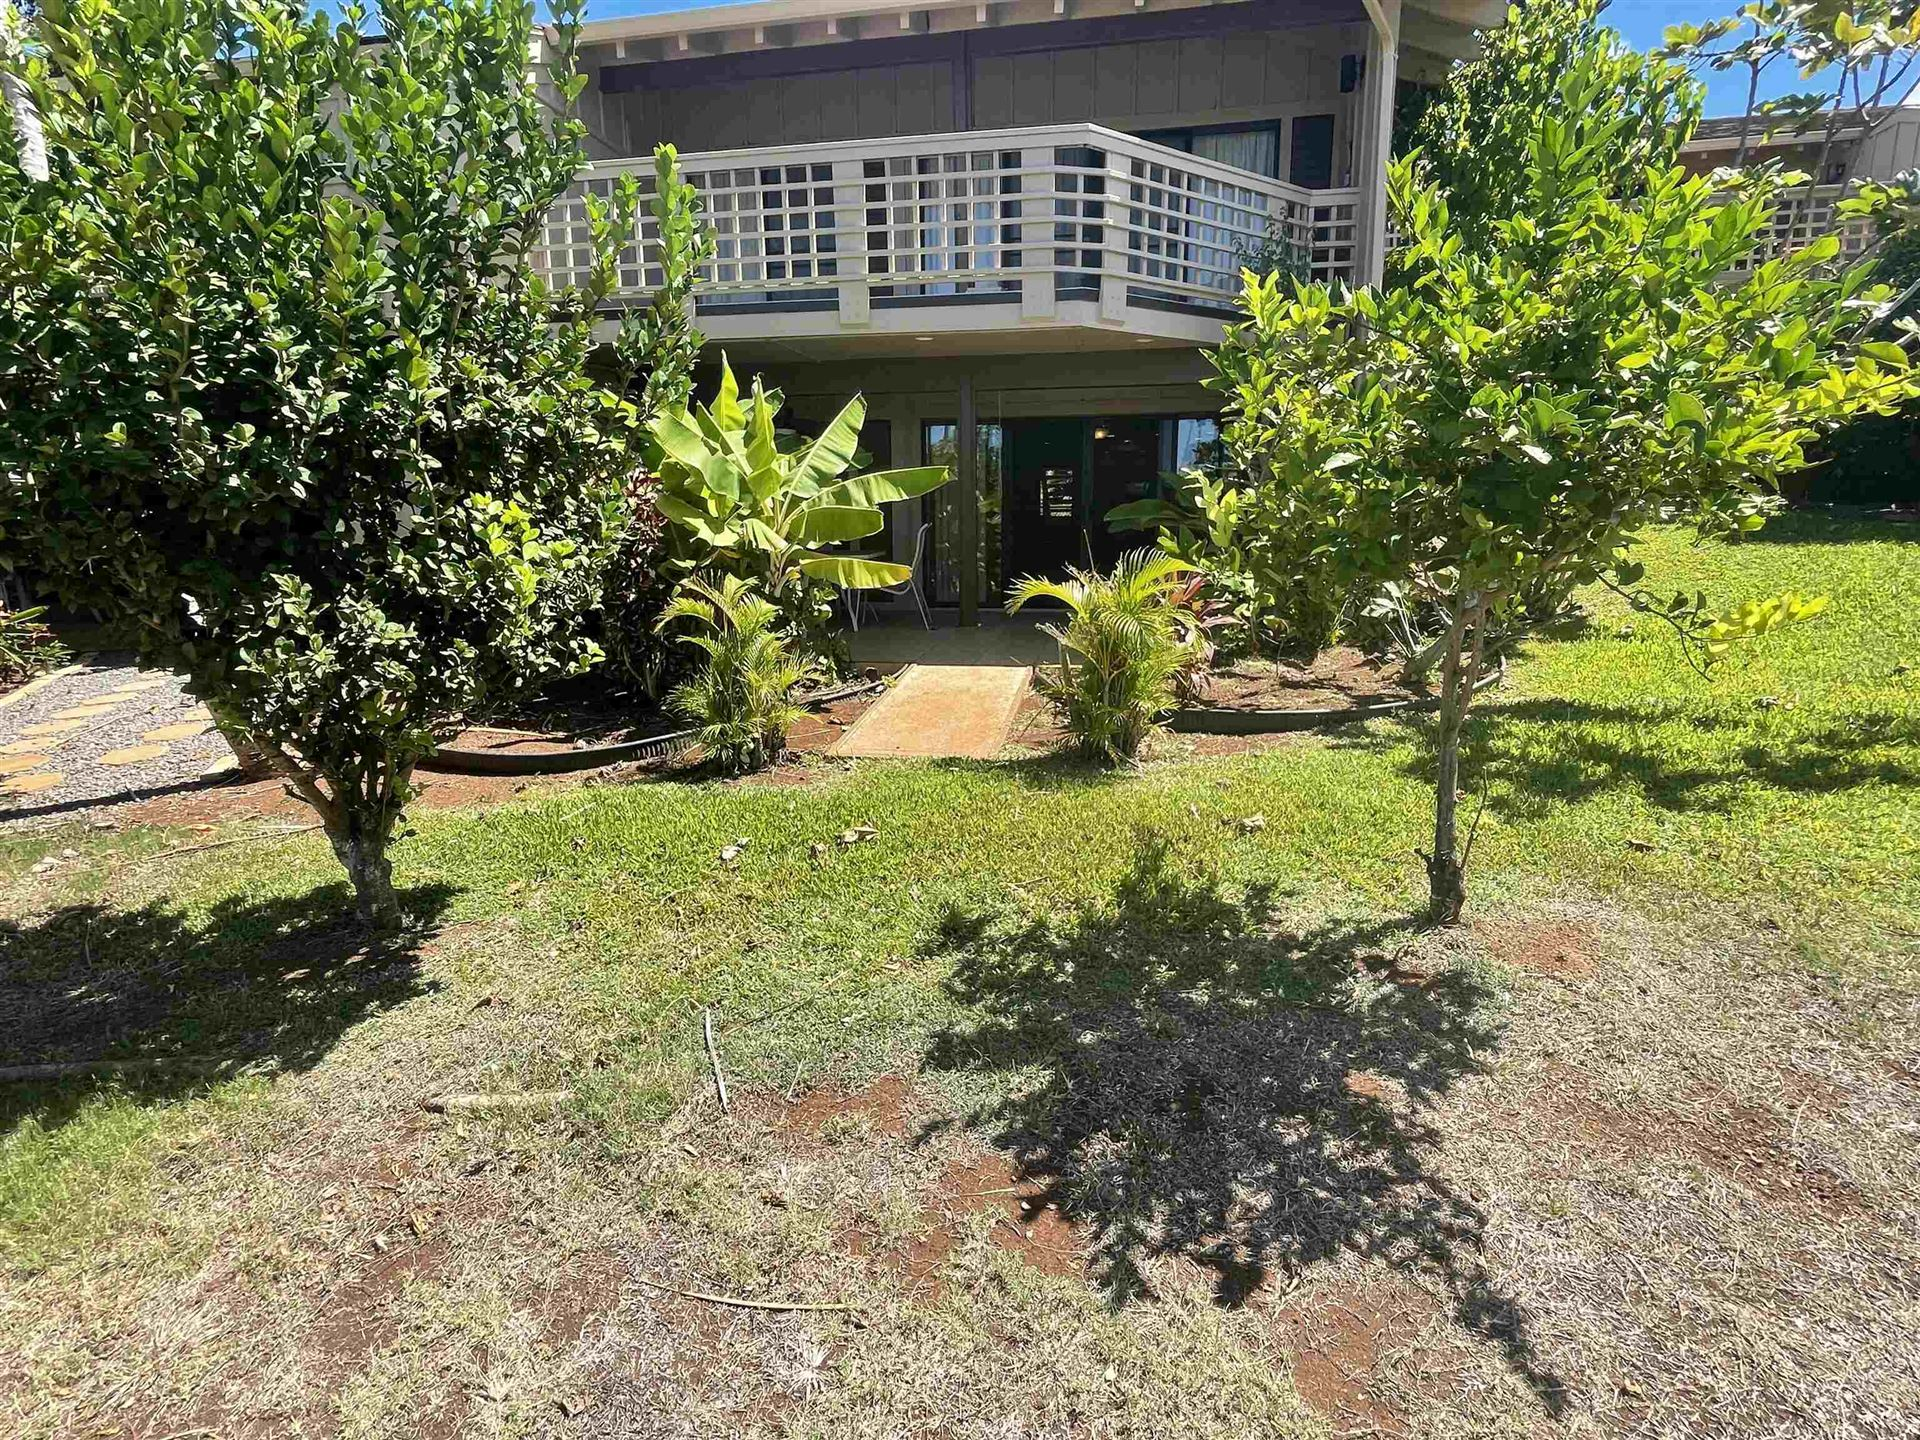 Photo of 50 Kepuhi Pl #102, Maunaloa, HI 96770 (MLS # 390868)